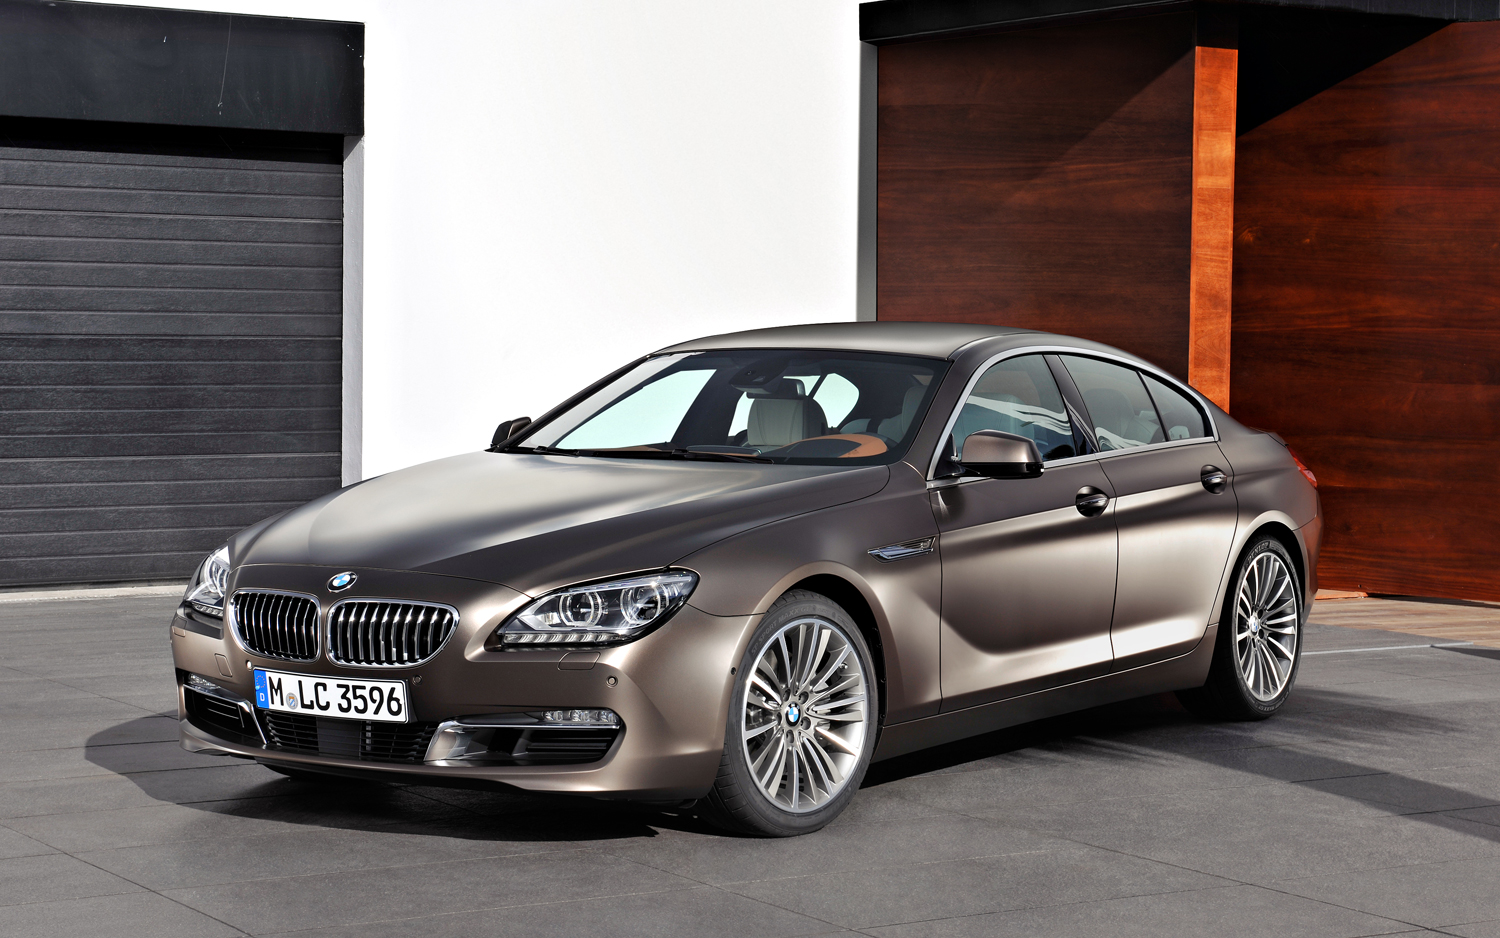 2013 Bmw 6 Series Gran Coupe #1